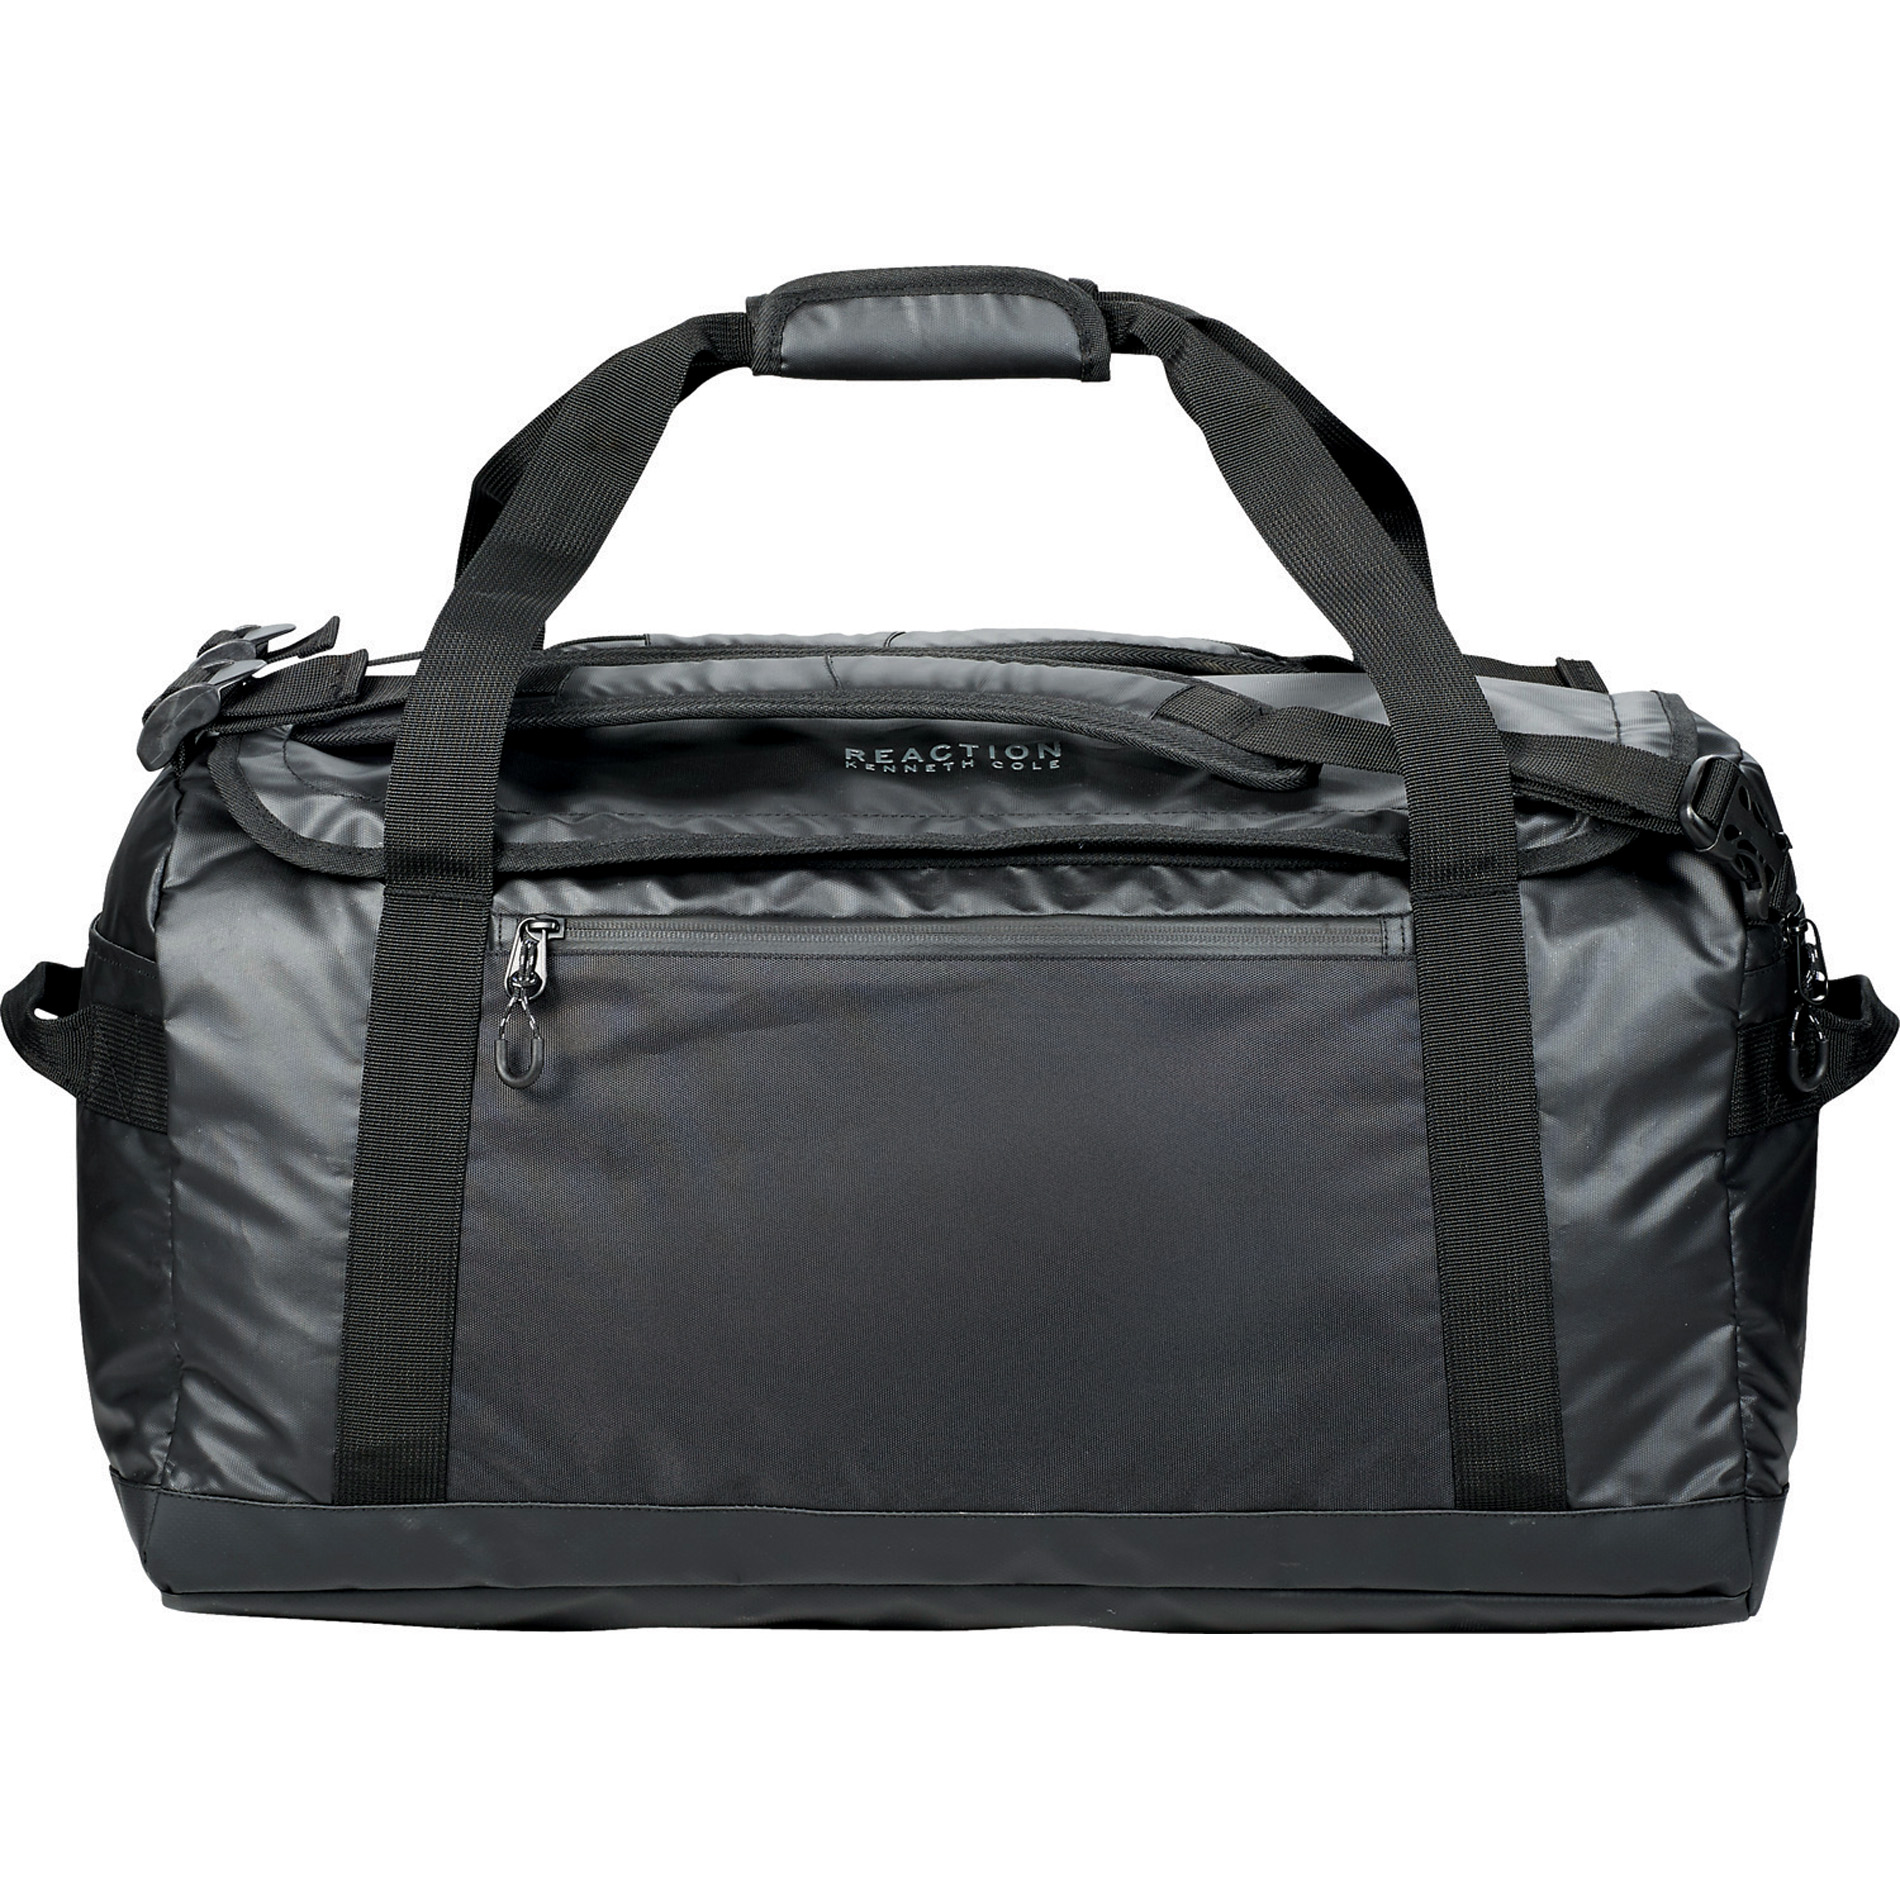 "Kenneth Cole 9950-76 - 22"" Duffel with Backpack Straps"